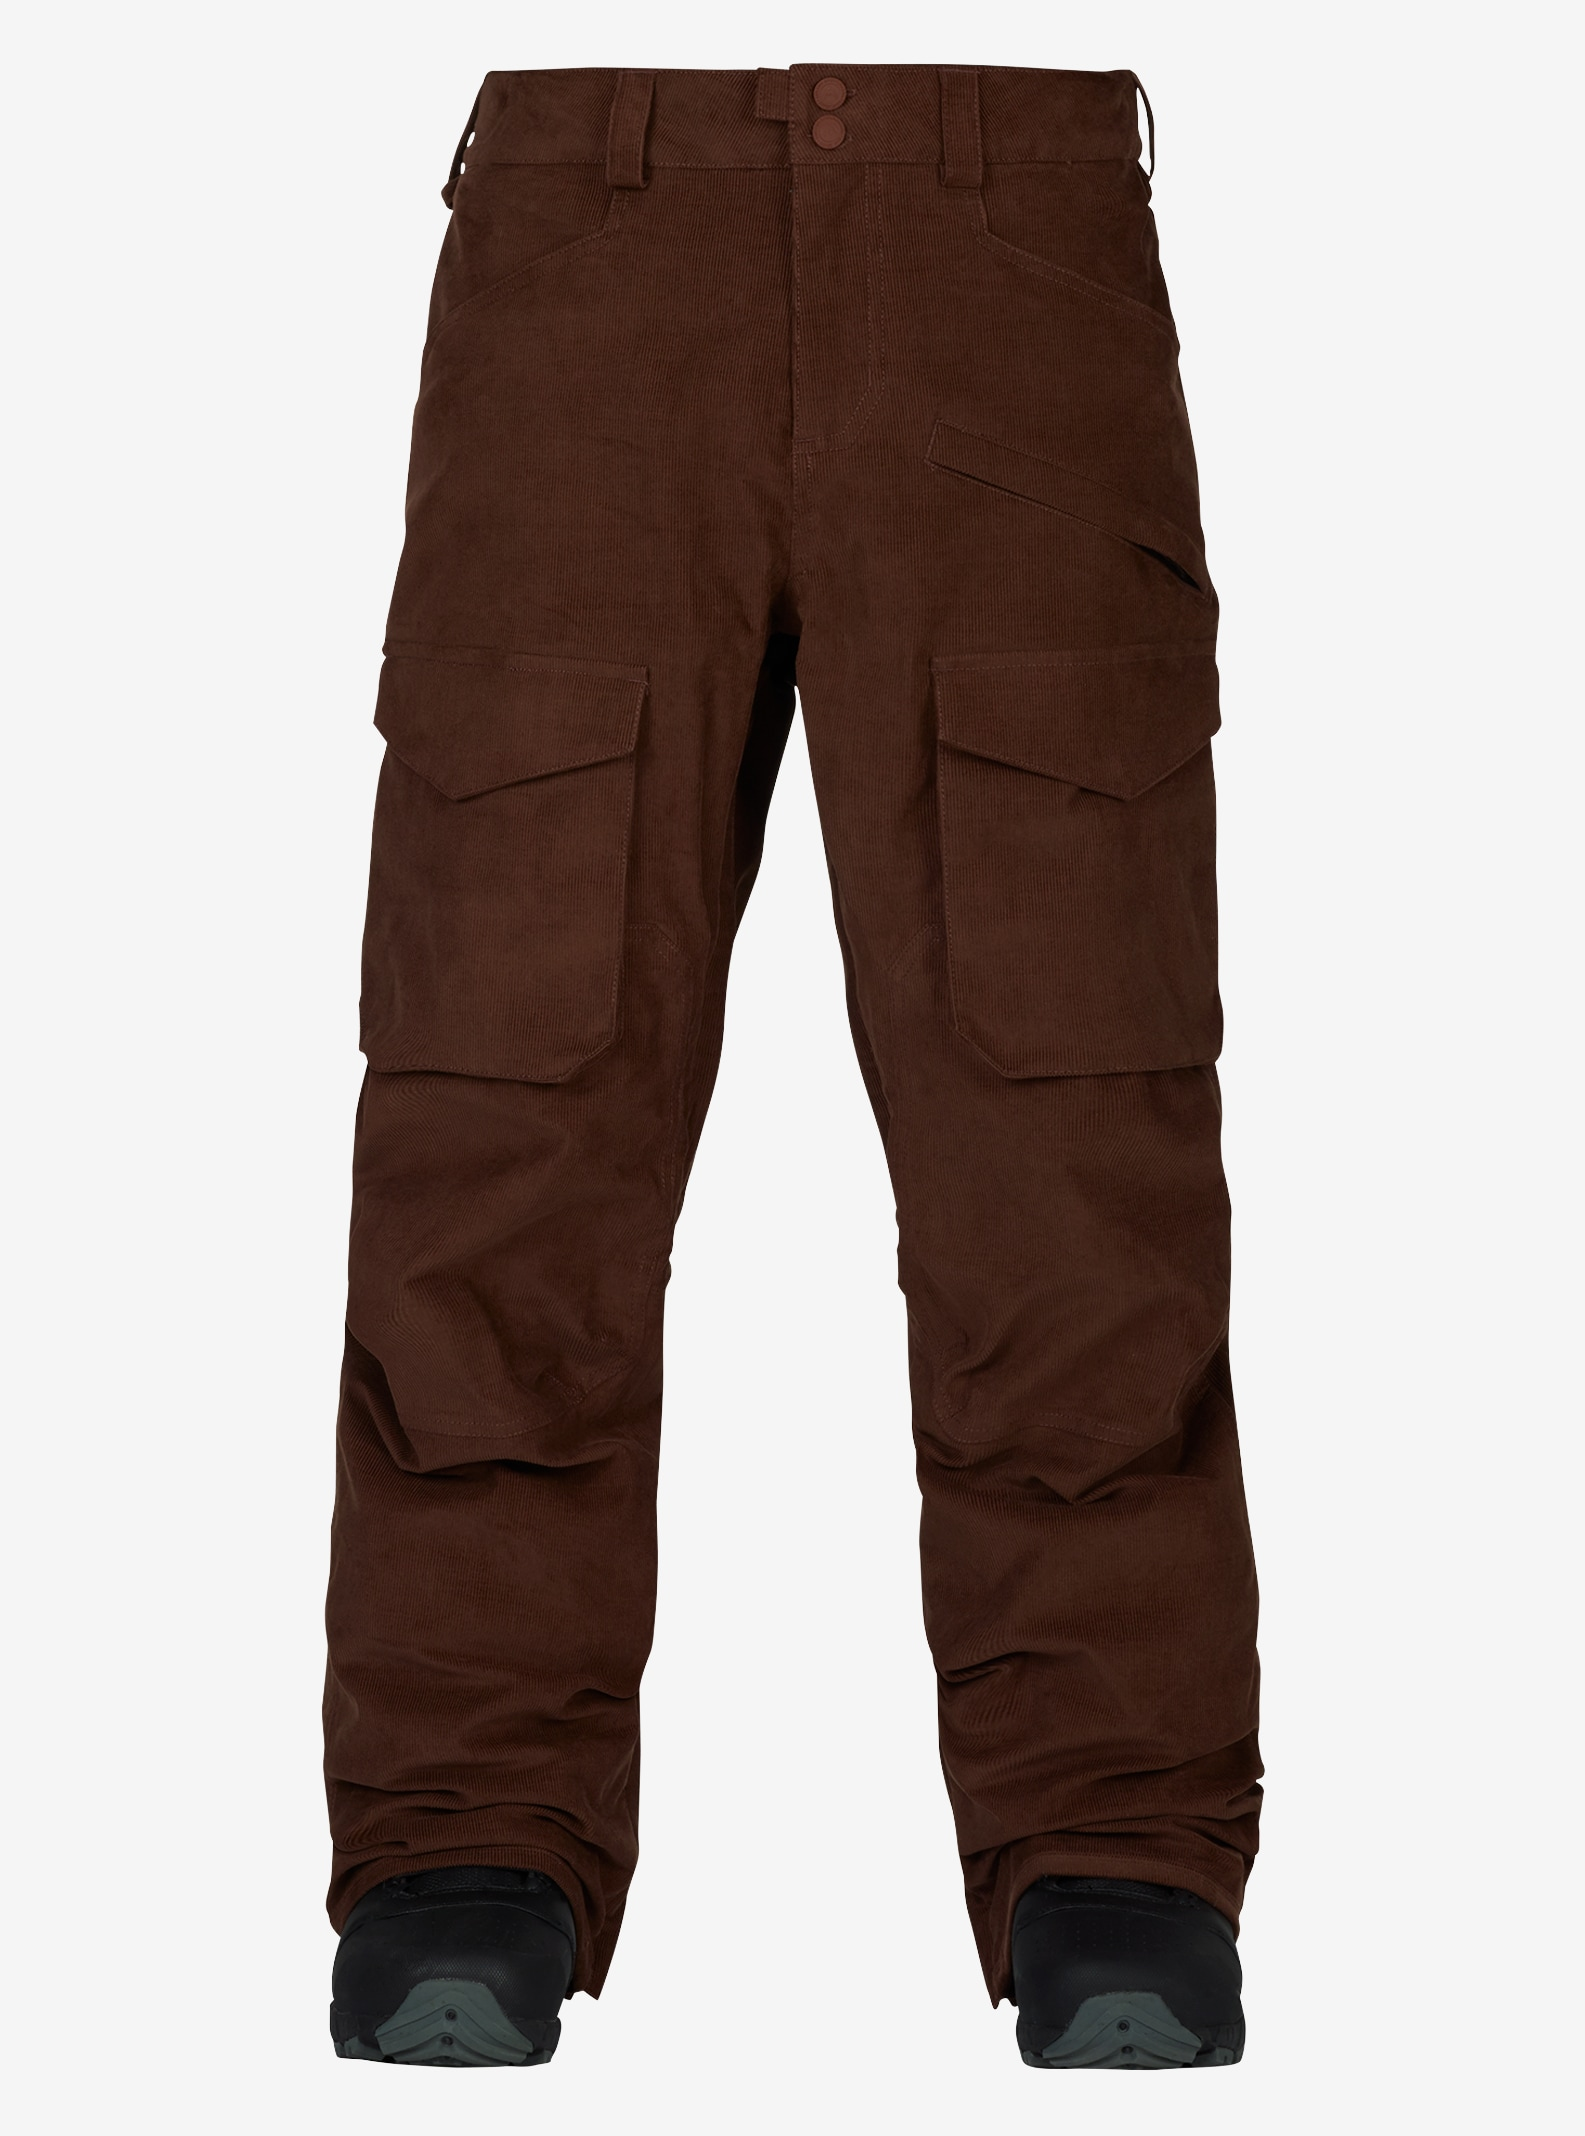 Men's Burton Hellbrook Pant shown in Chestnut Cord